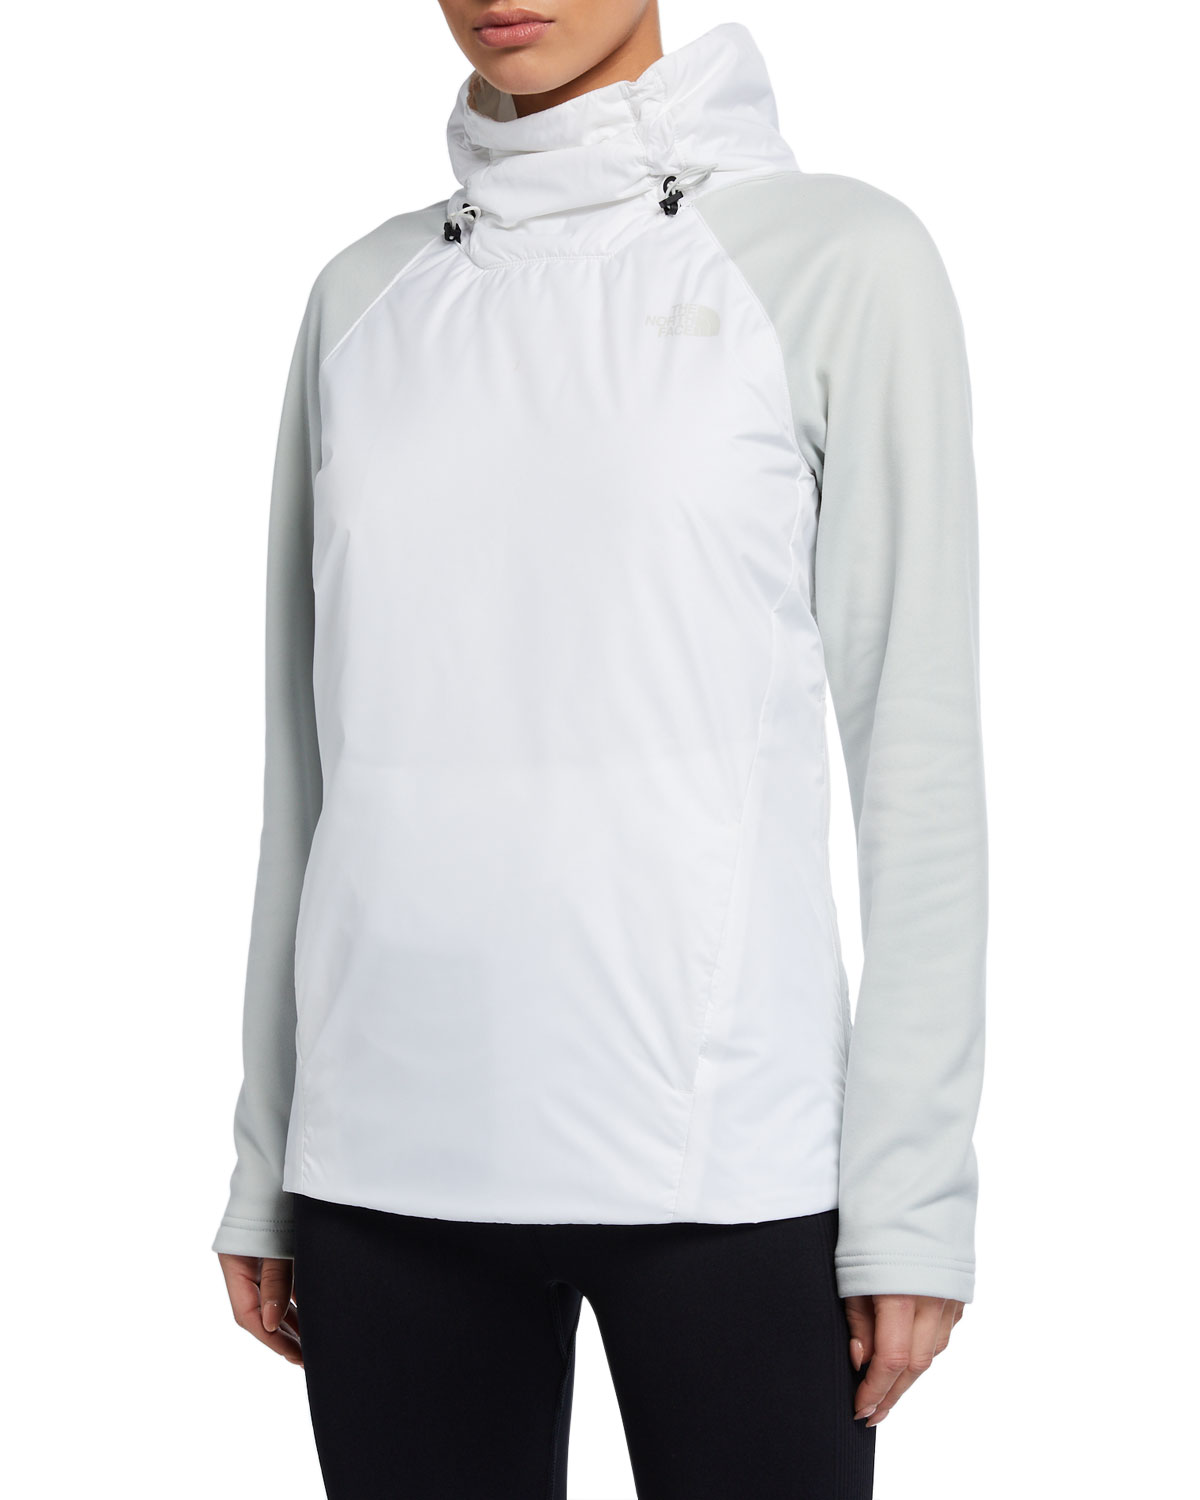 The North Face Canyonlands Insulated Hybrid Pullover Jacket, White/Gray